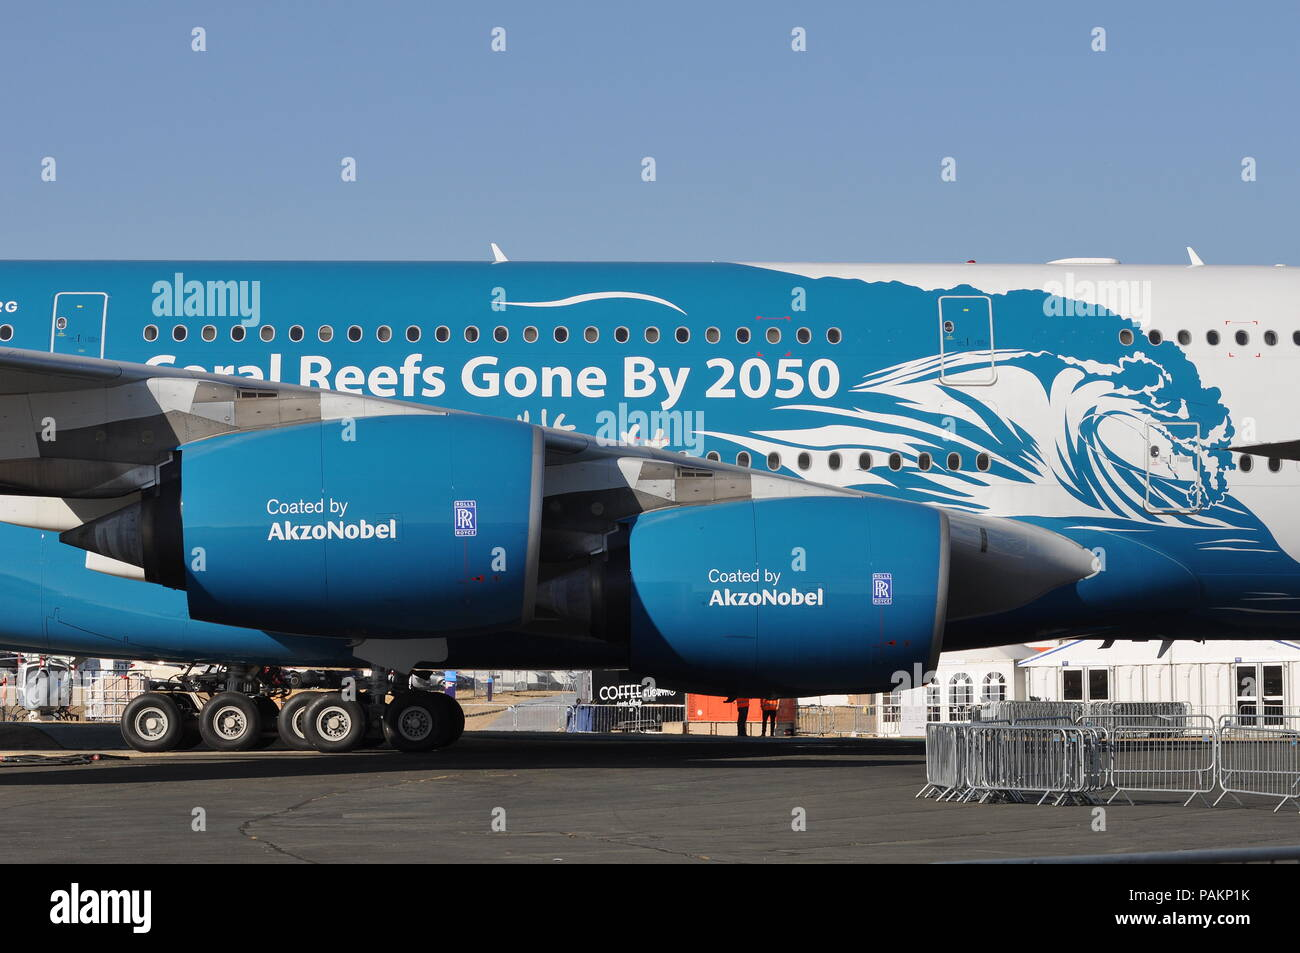 HIFLY AIRBUS A380 IN 'Save The Coral Reefs' livery. Stock Photo